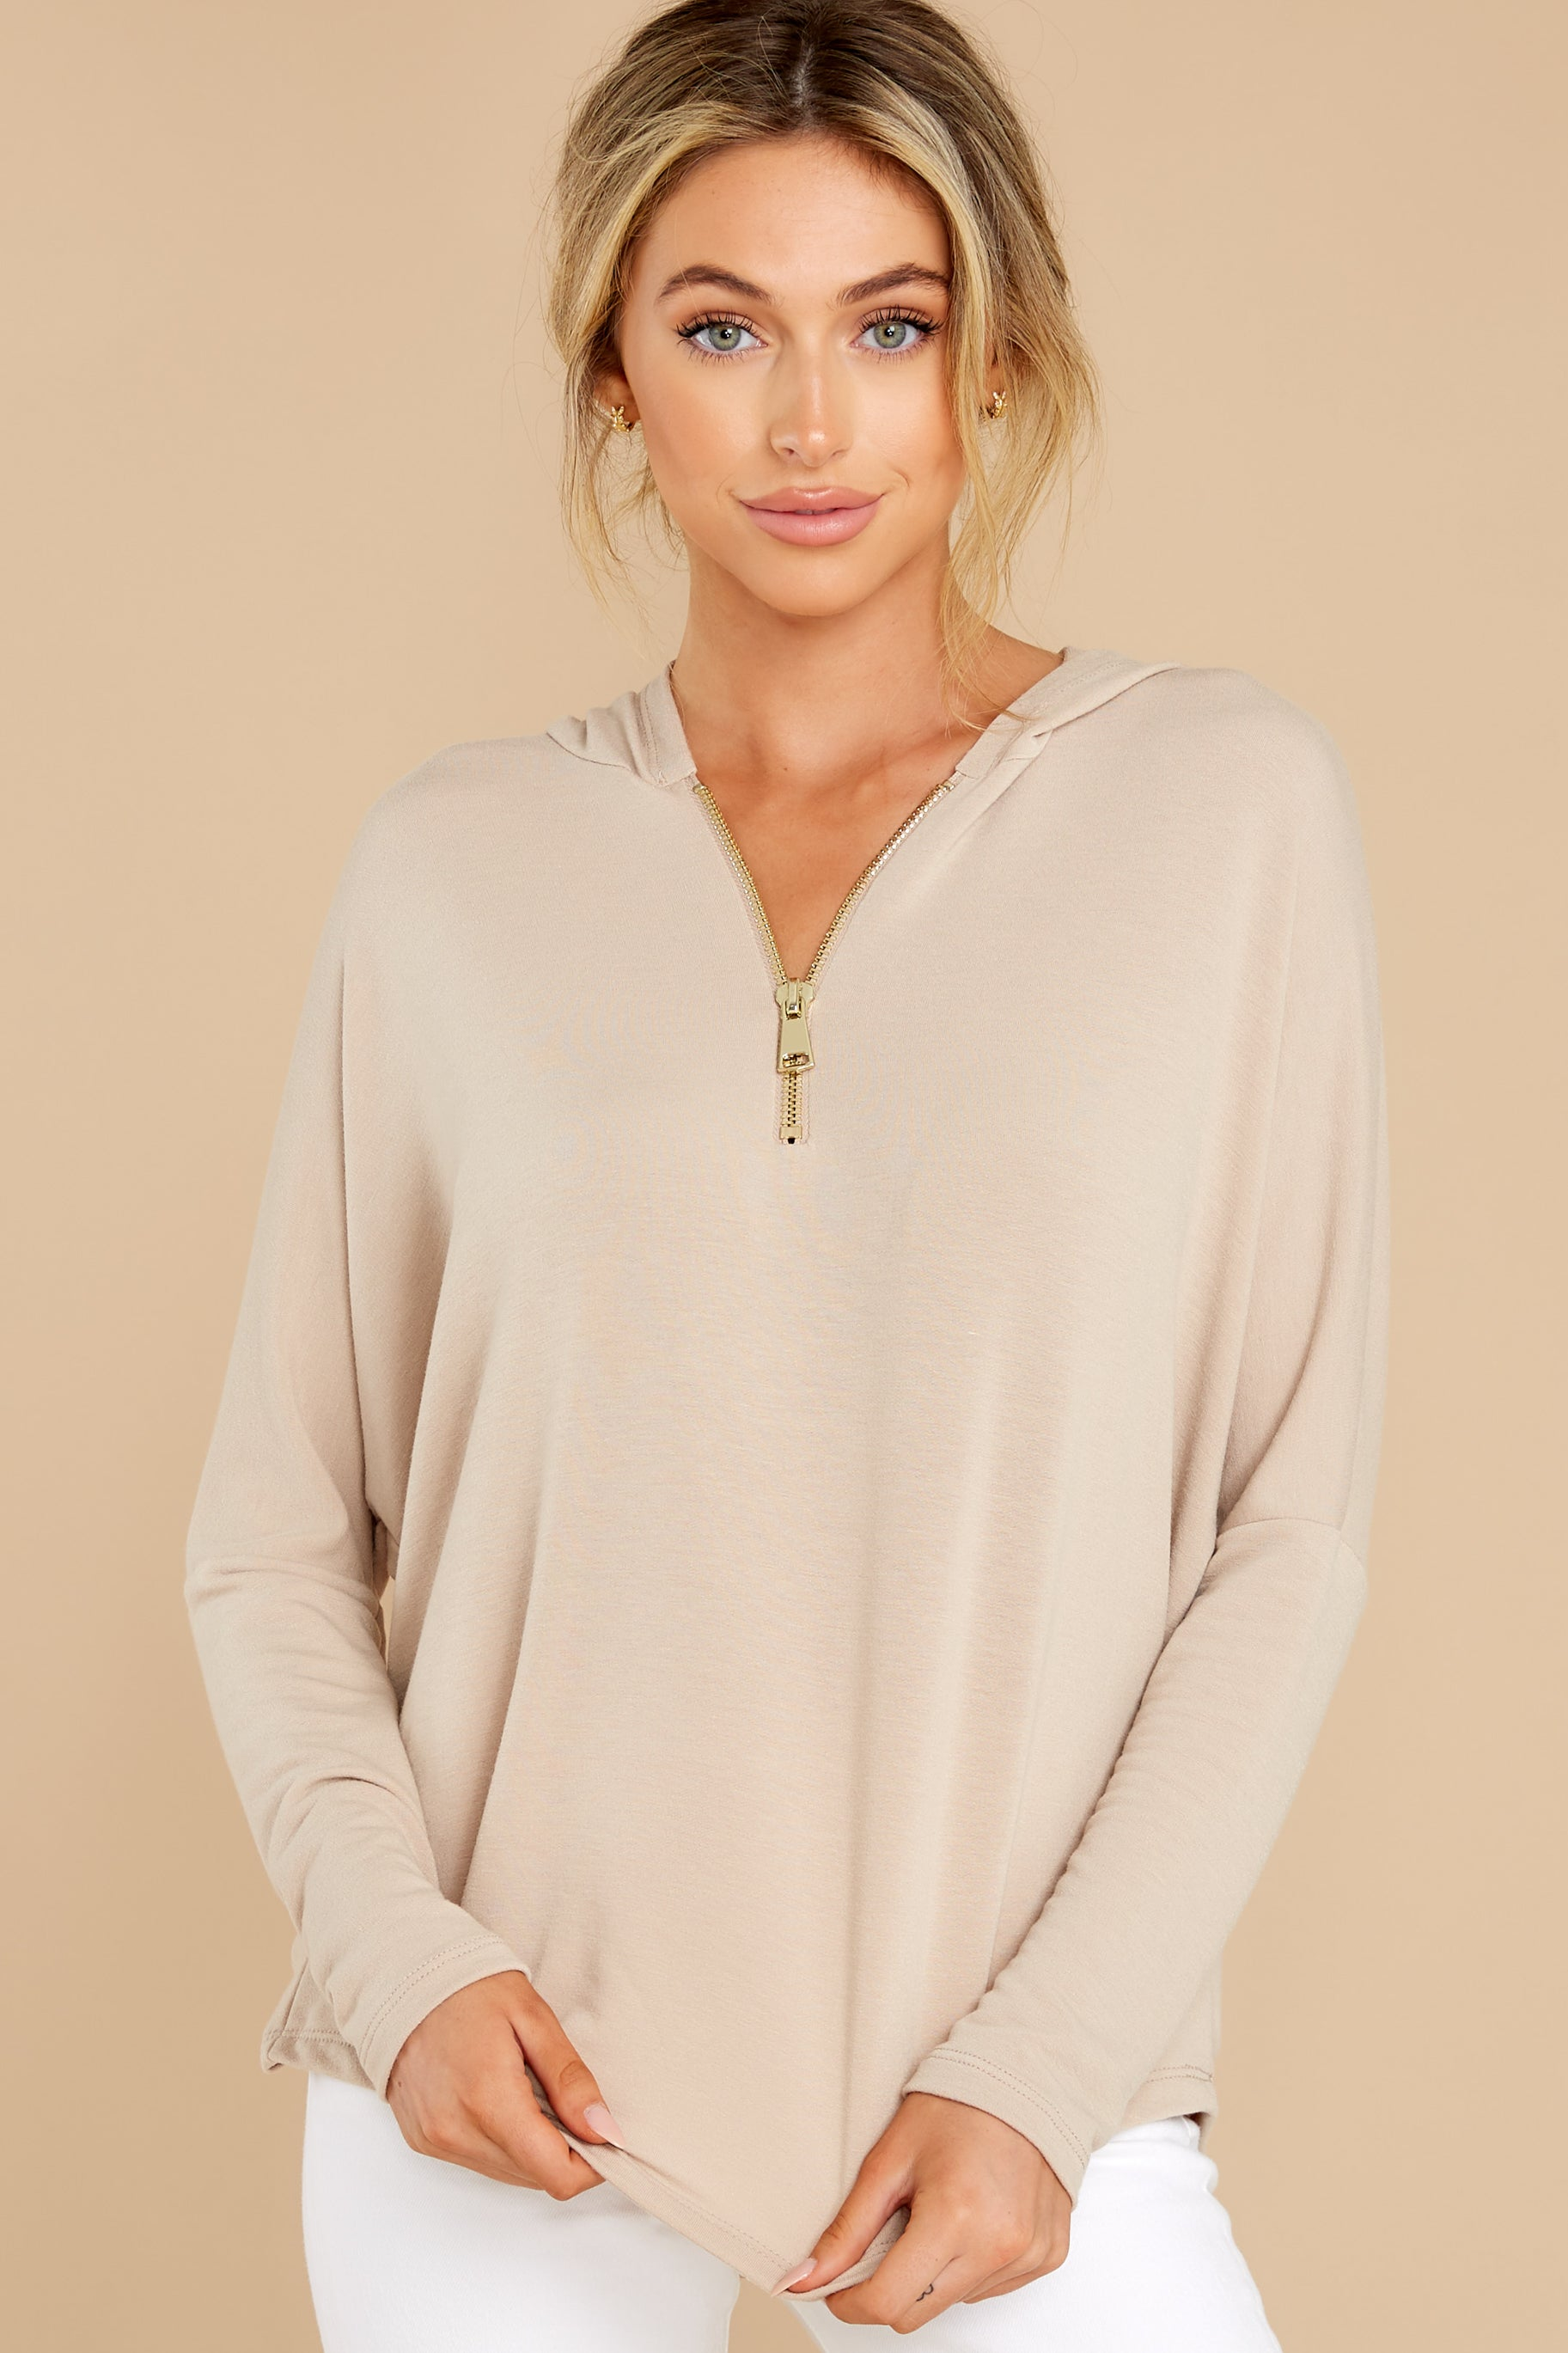 7 Updated Status Taupe Quarter Zip Hoodie at reddress.com